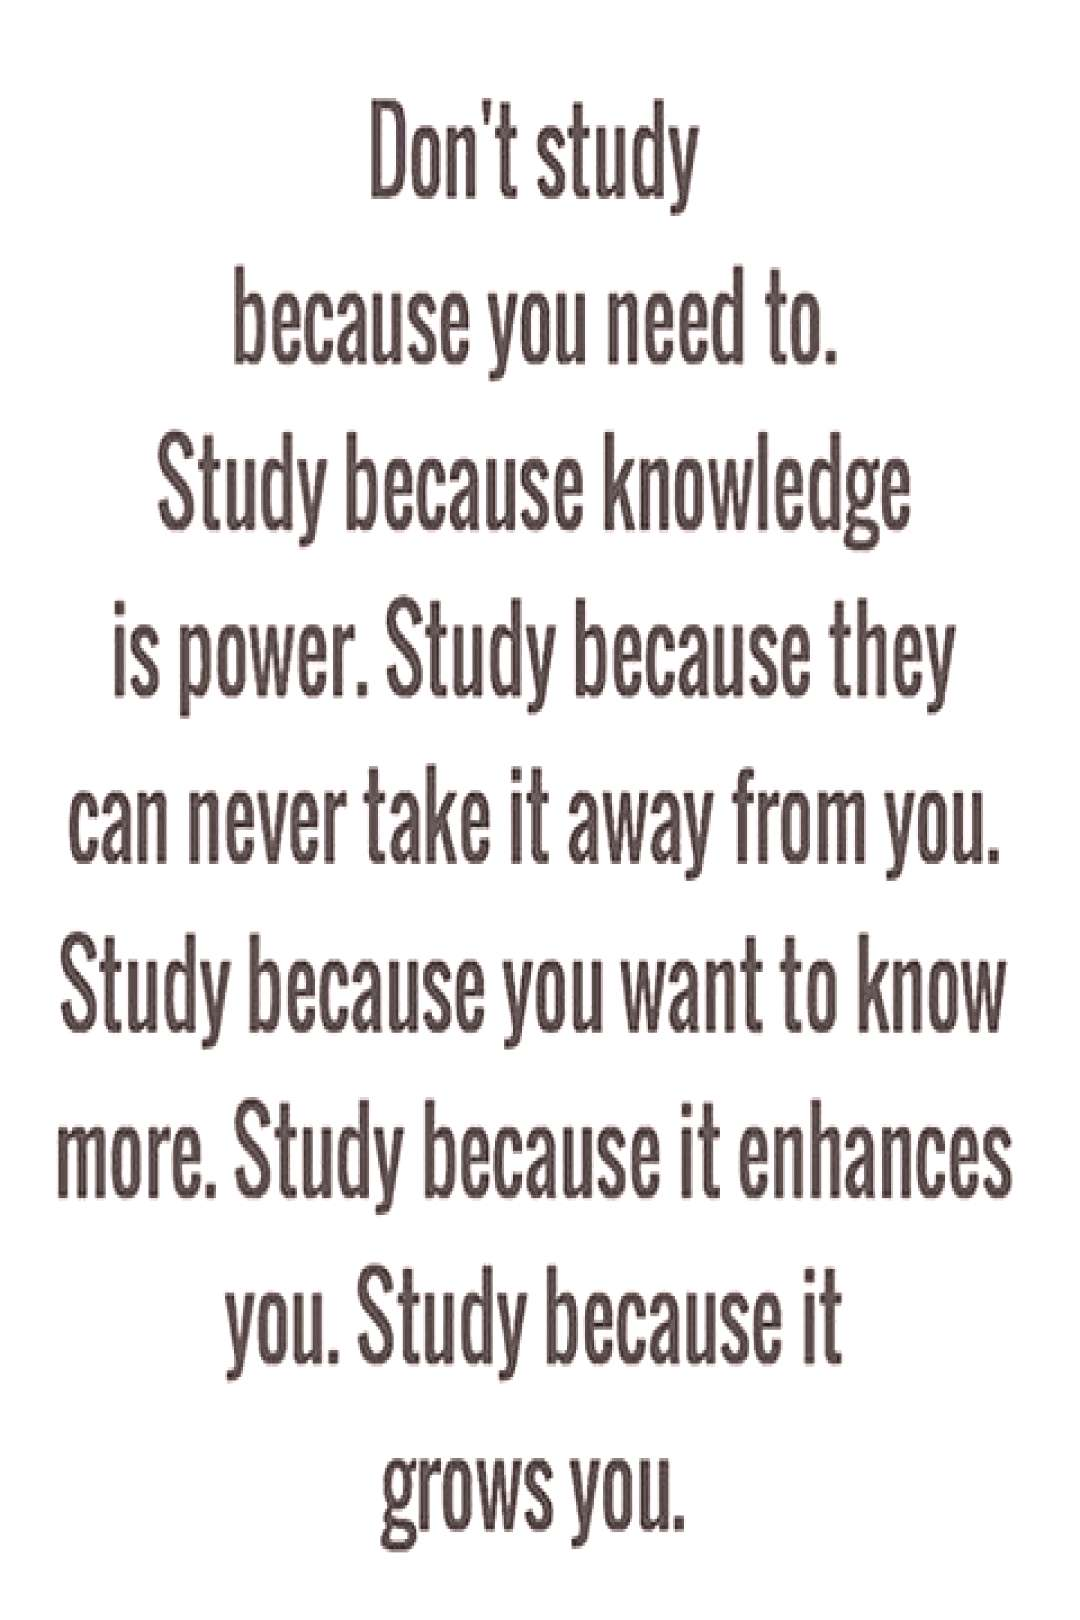 in   in Good morning! Study is an integral part of your life and one of the most important on